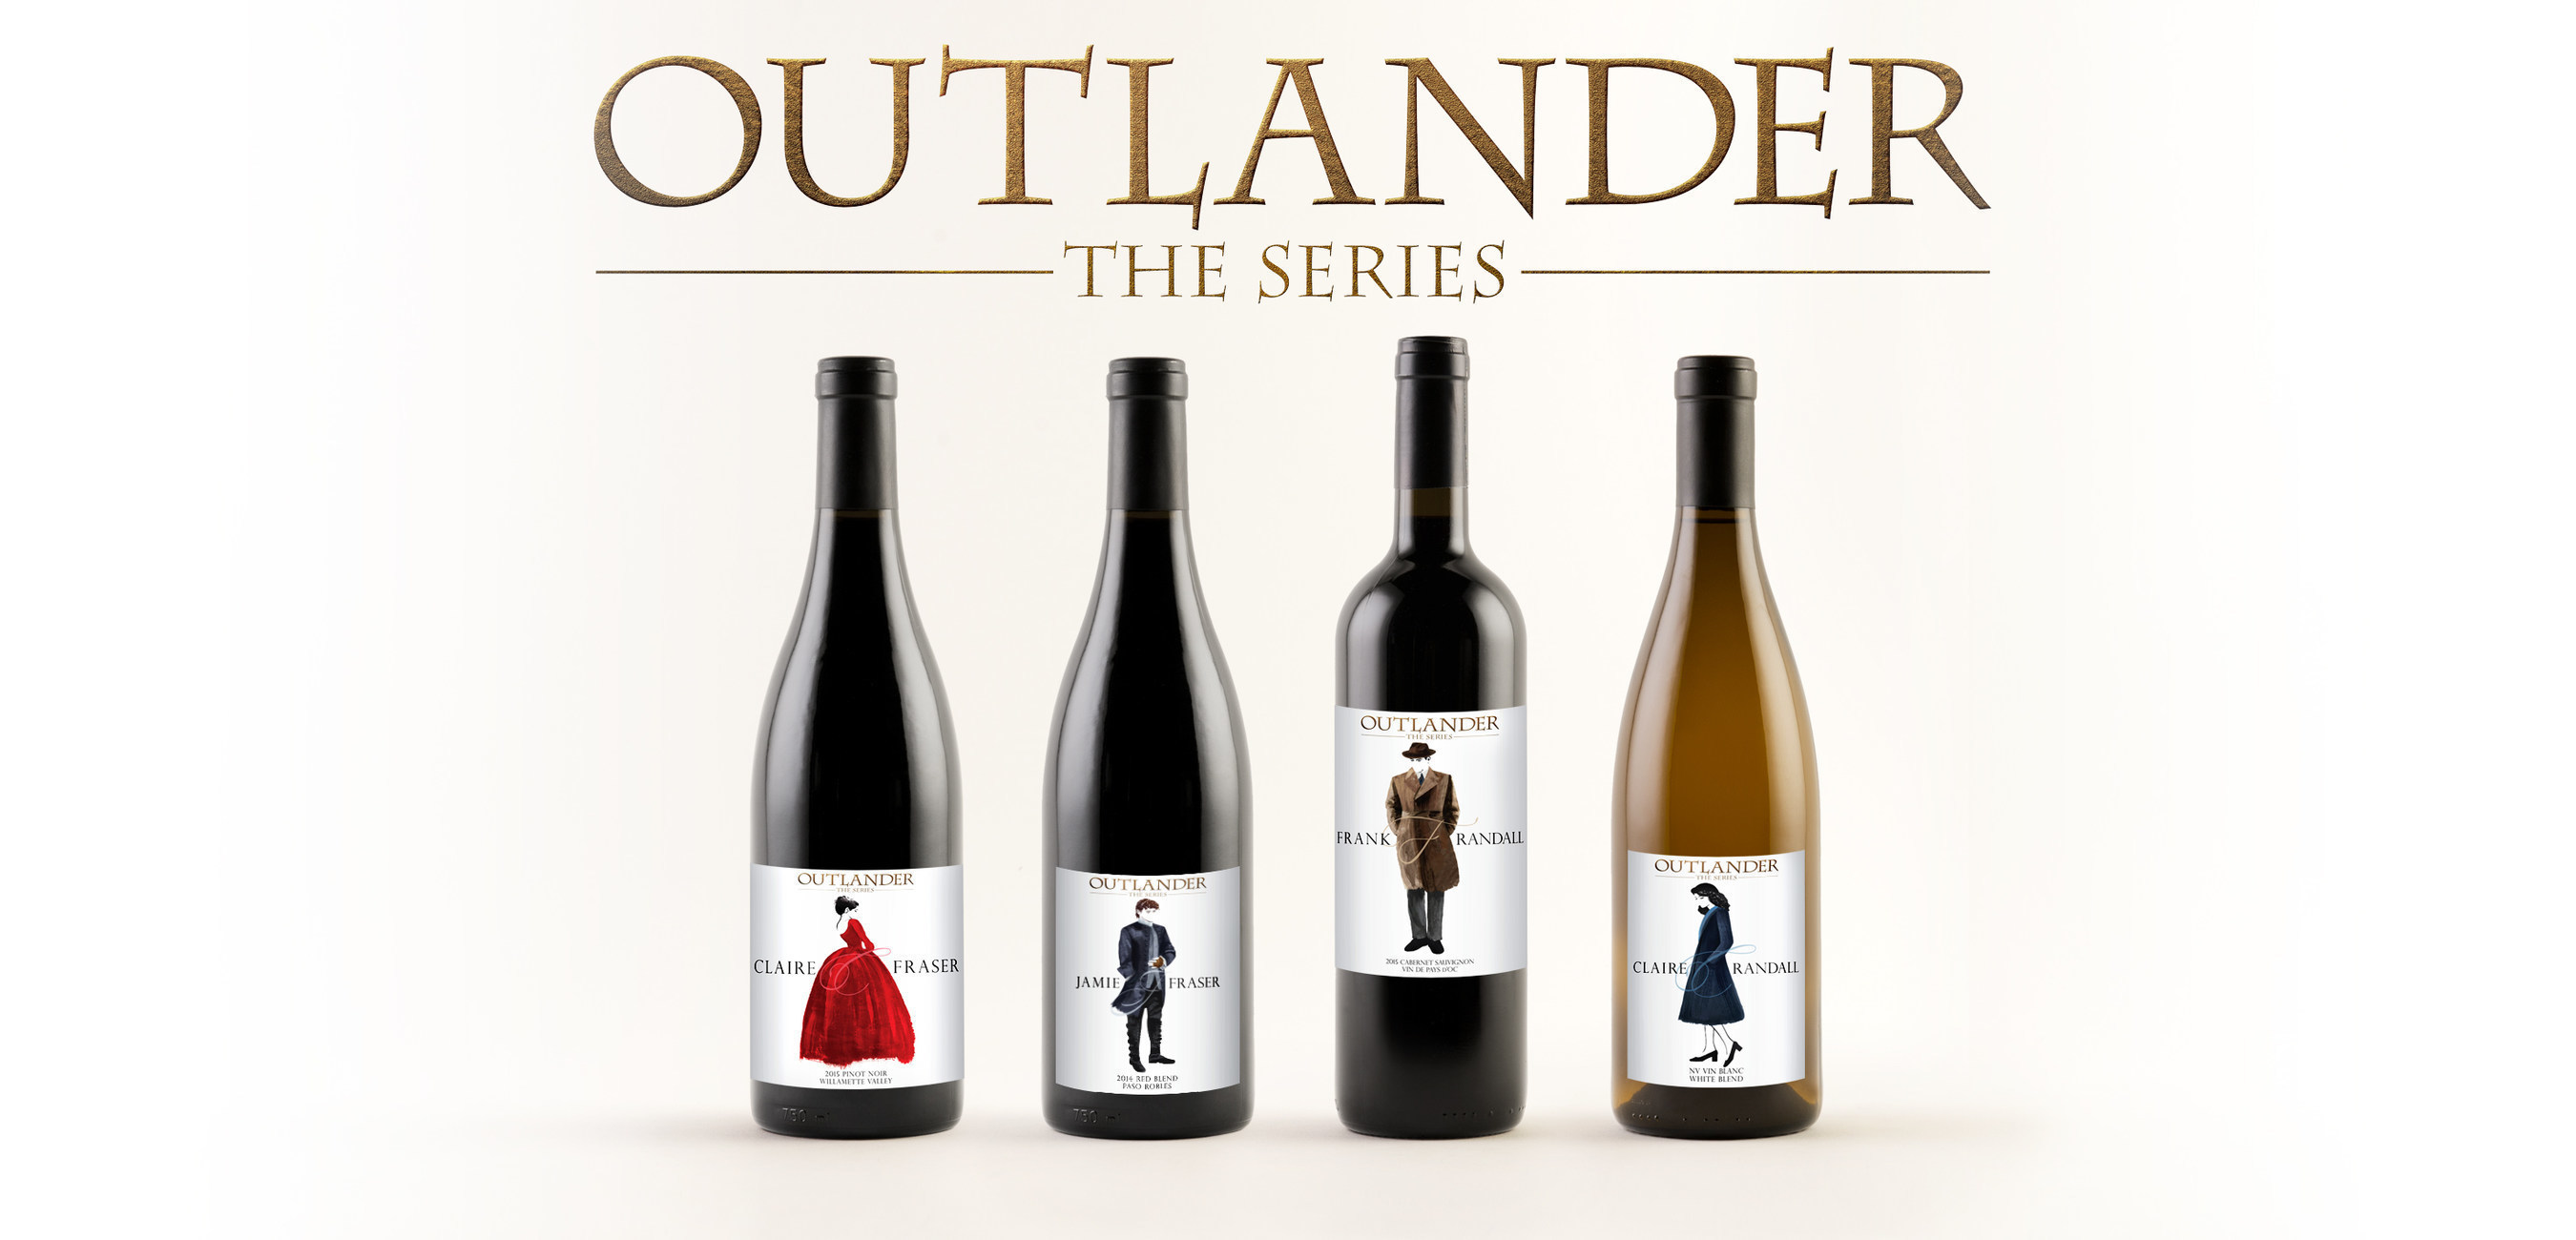 Courtesy of Outlander